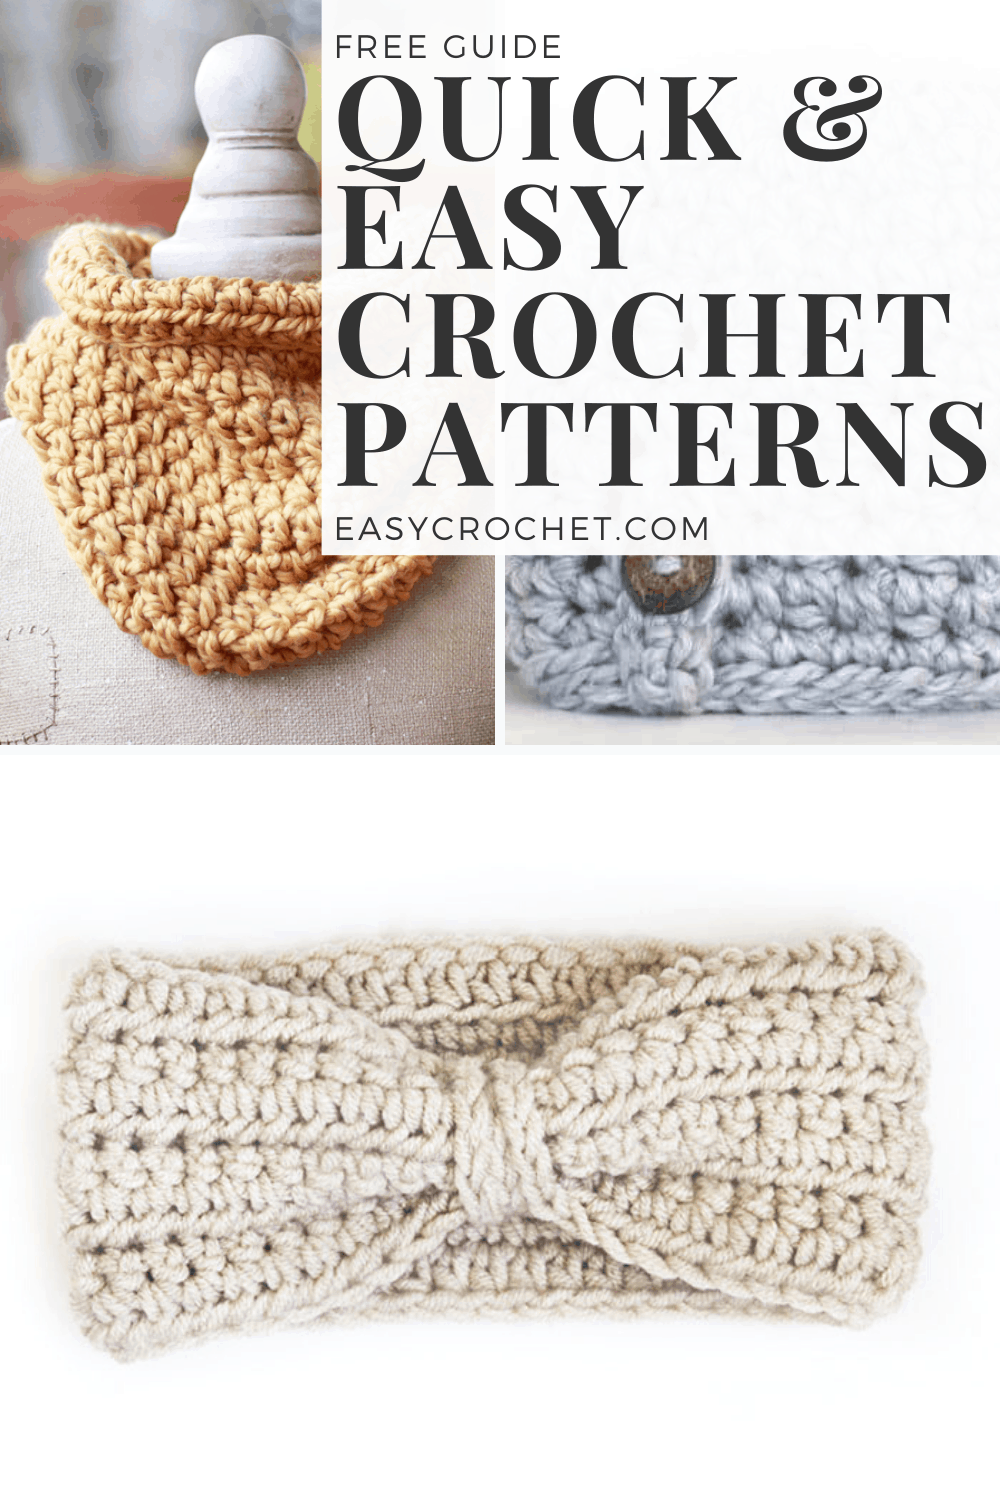 Quick and Easy Crochet Patterns that work up in 2 hours or less